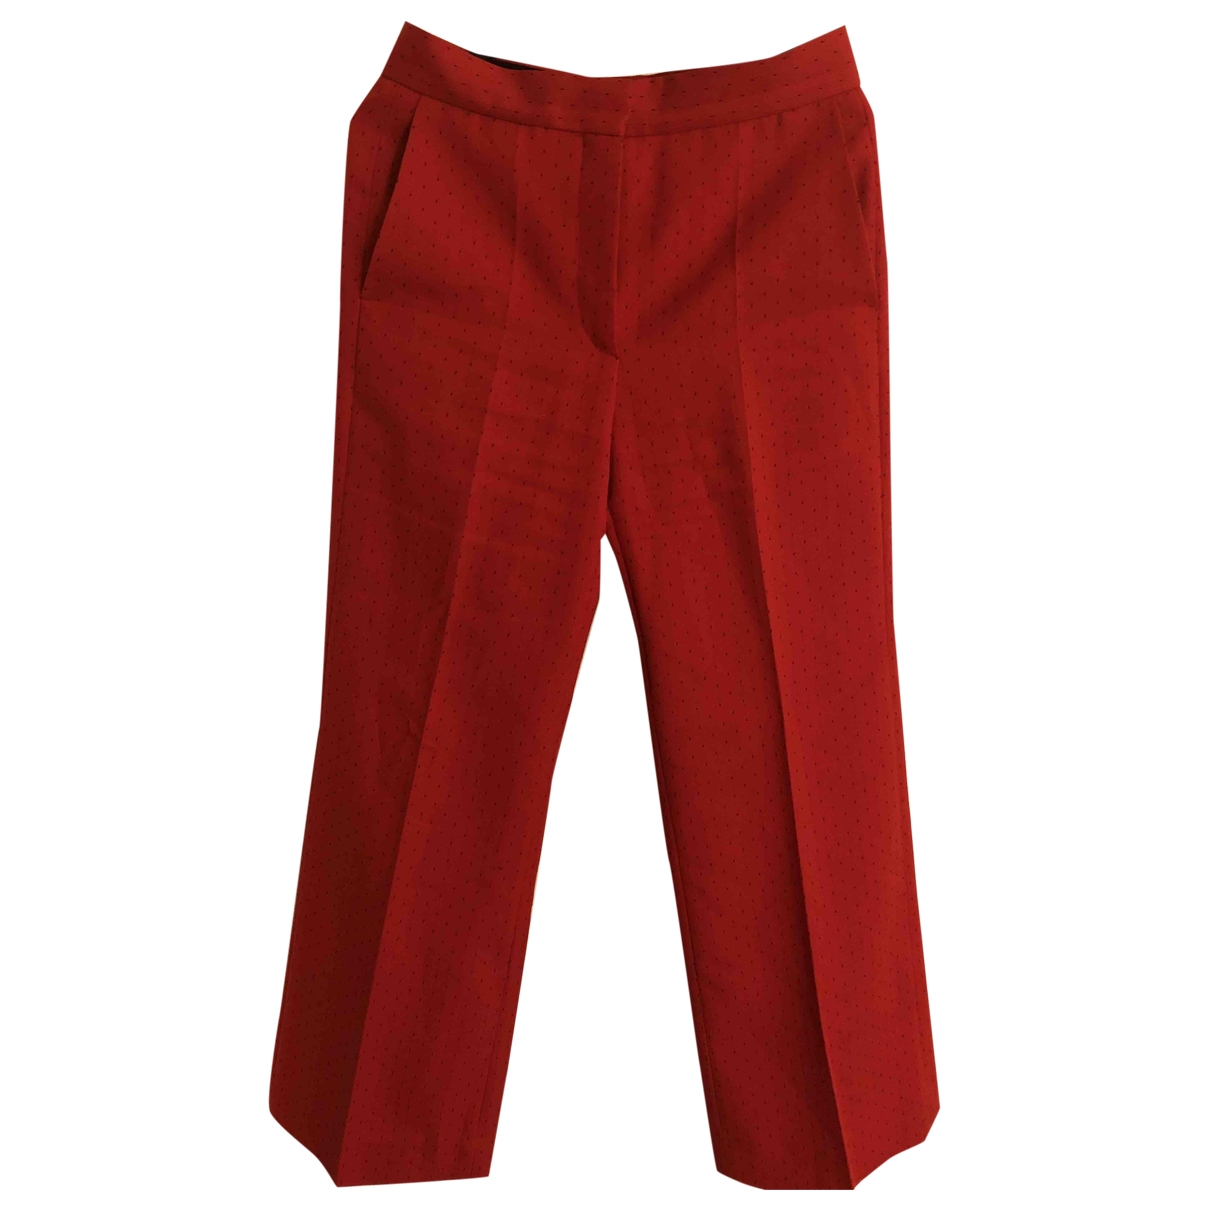 Sandro Fall Winter 2019 Red Trousers for Women 36 FR